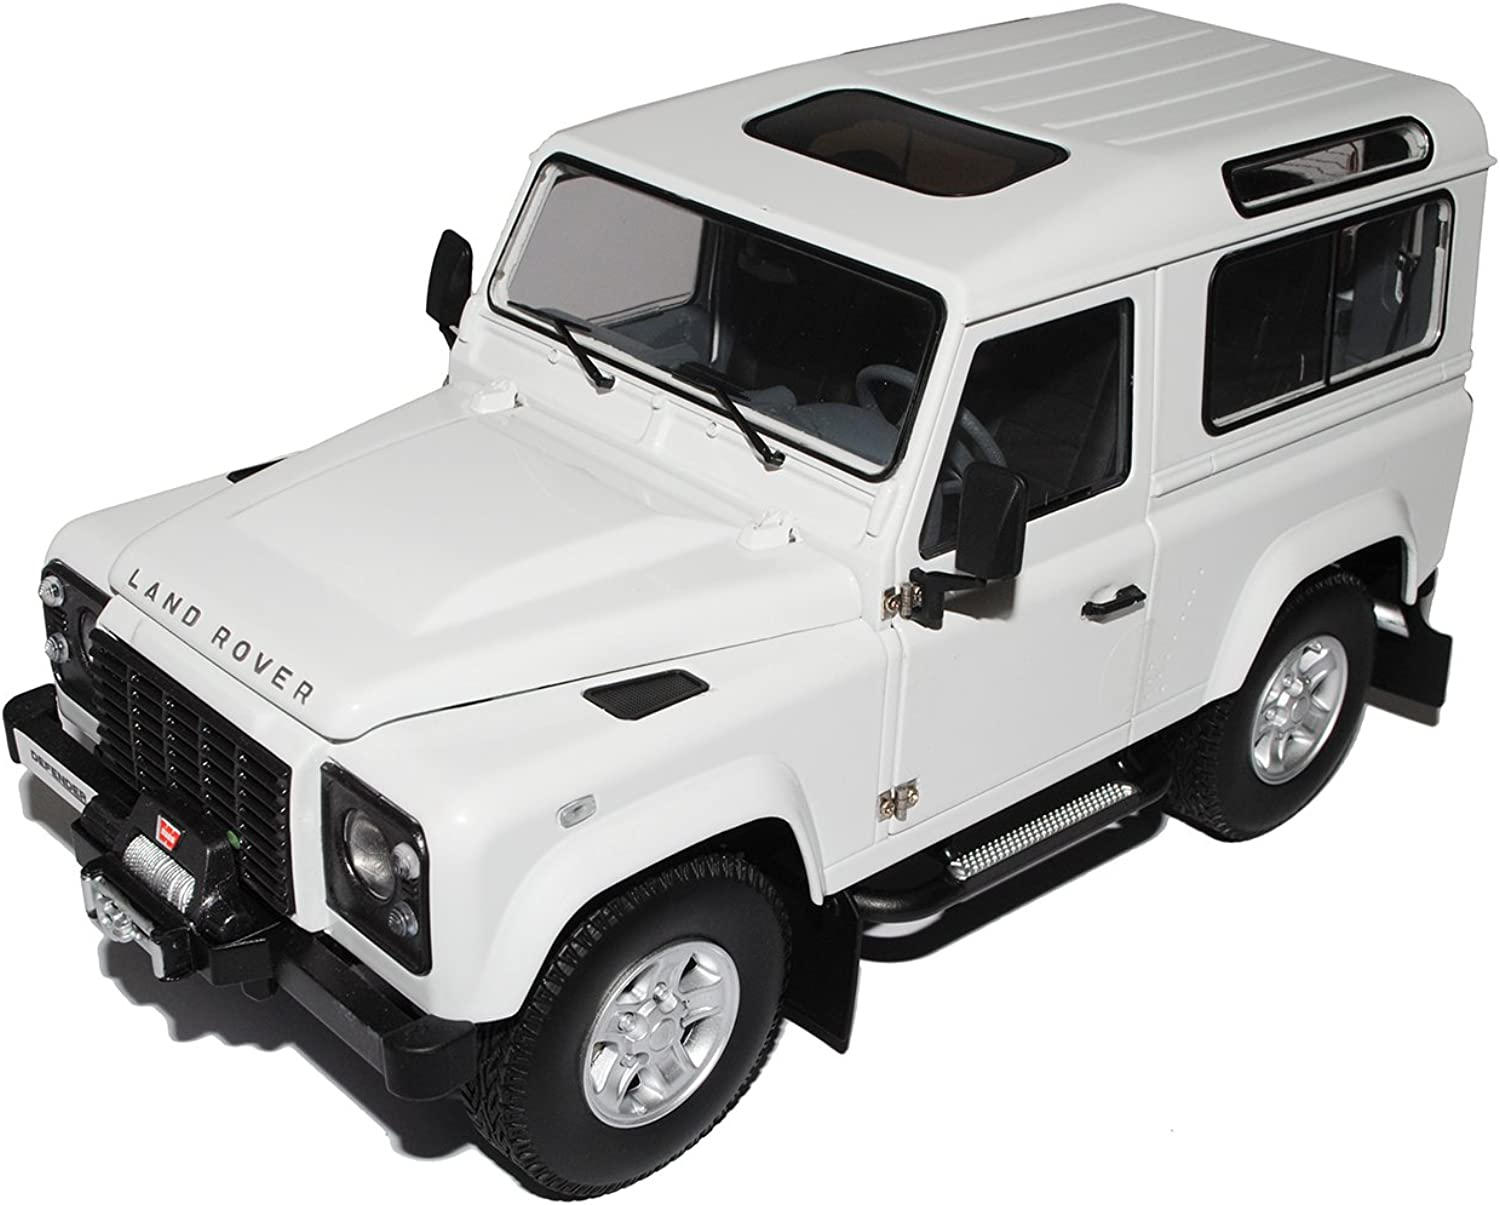 Land Rover Defender 90 Fuji Weiss 08901FW 1 18 Kyosho Modell Auto